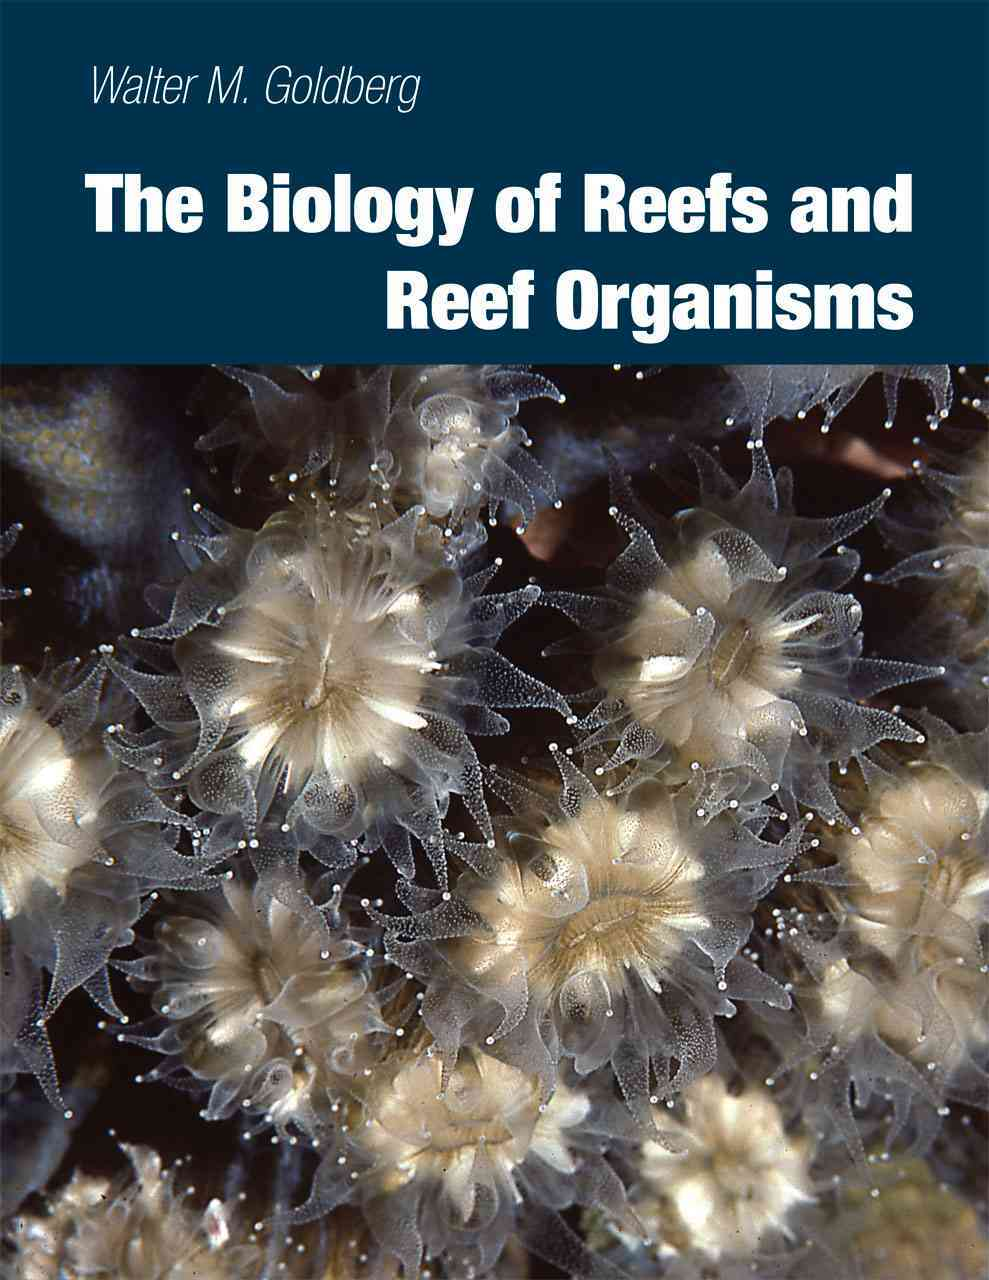 The Biology of Reefs and Reef Organisms By Goldberg, Walter M.